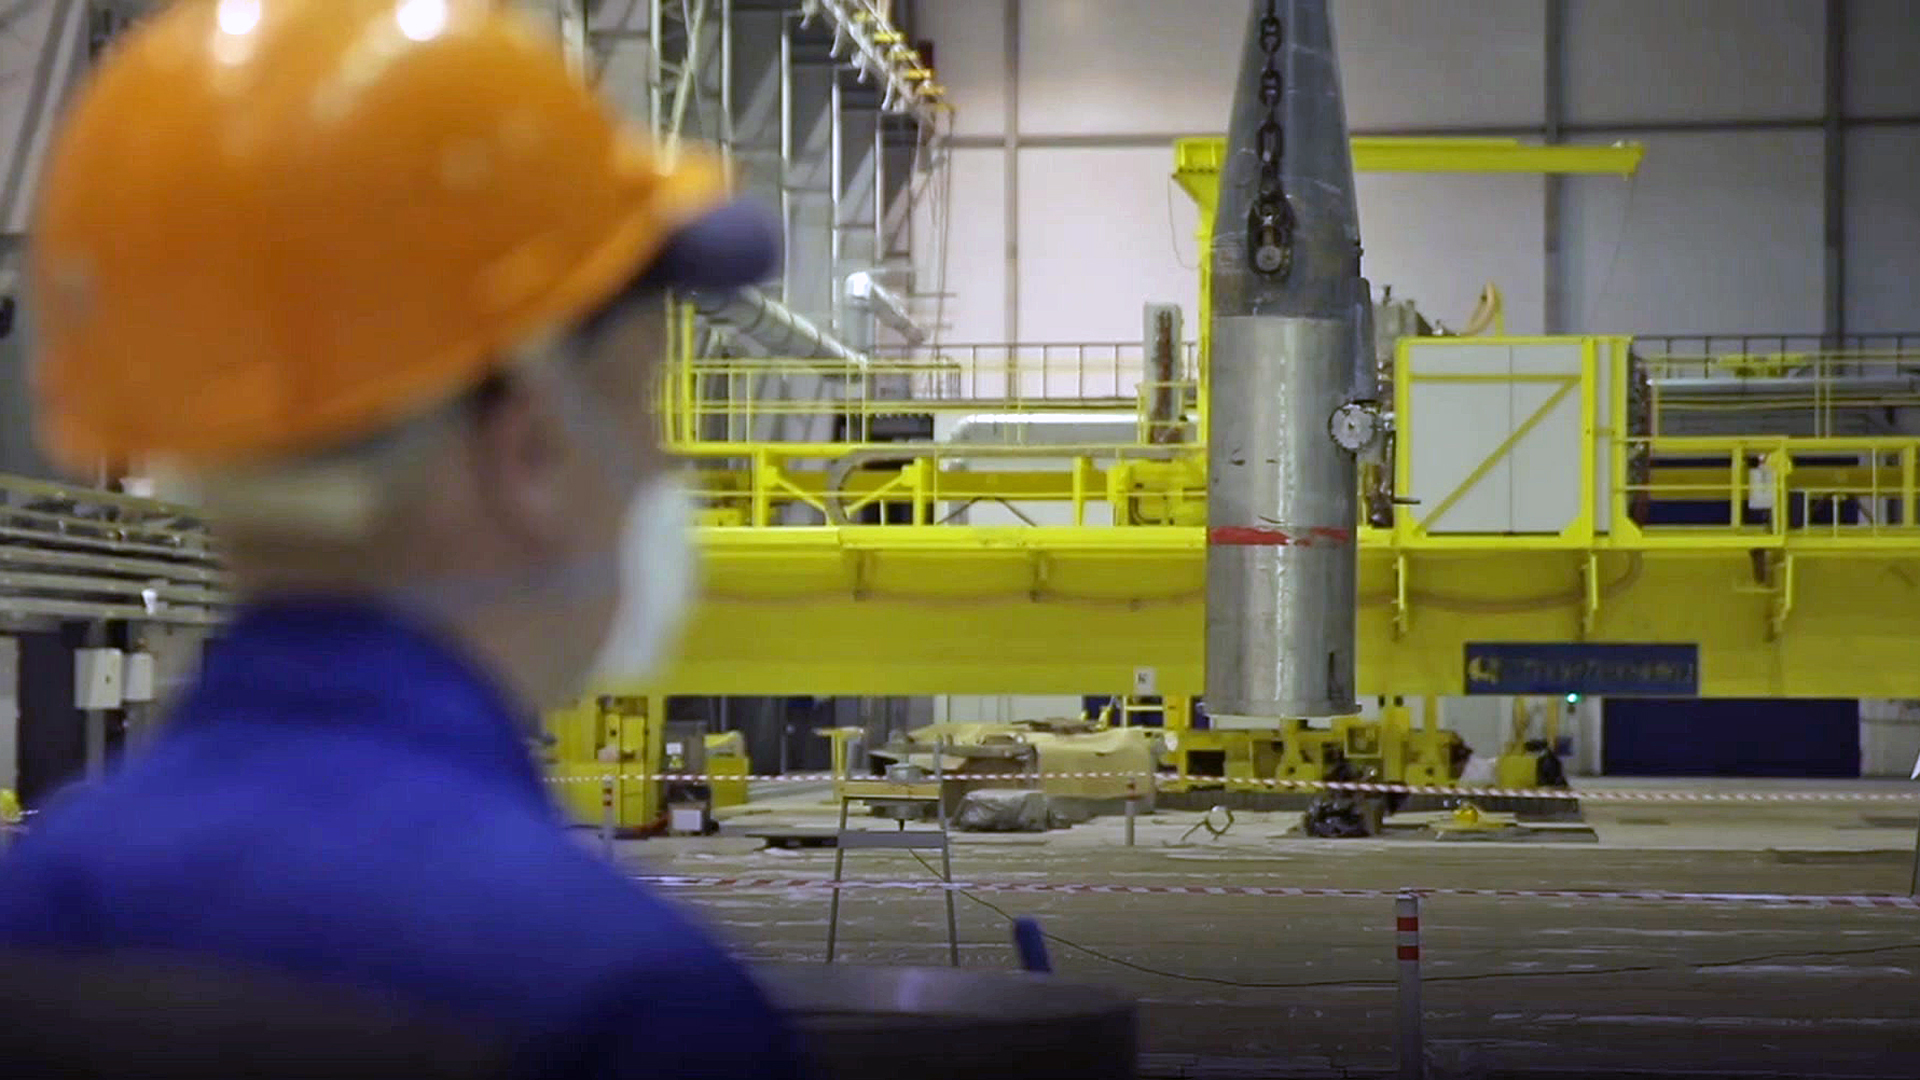 £100m from West to clean up Russian nuclear base